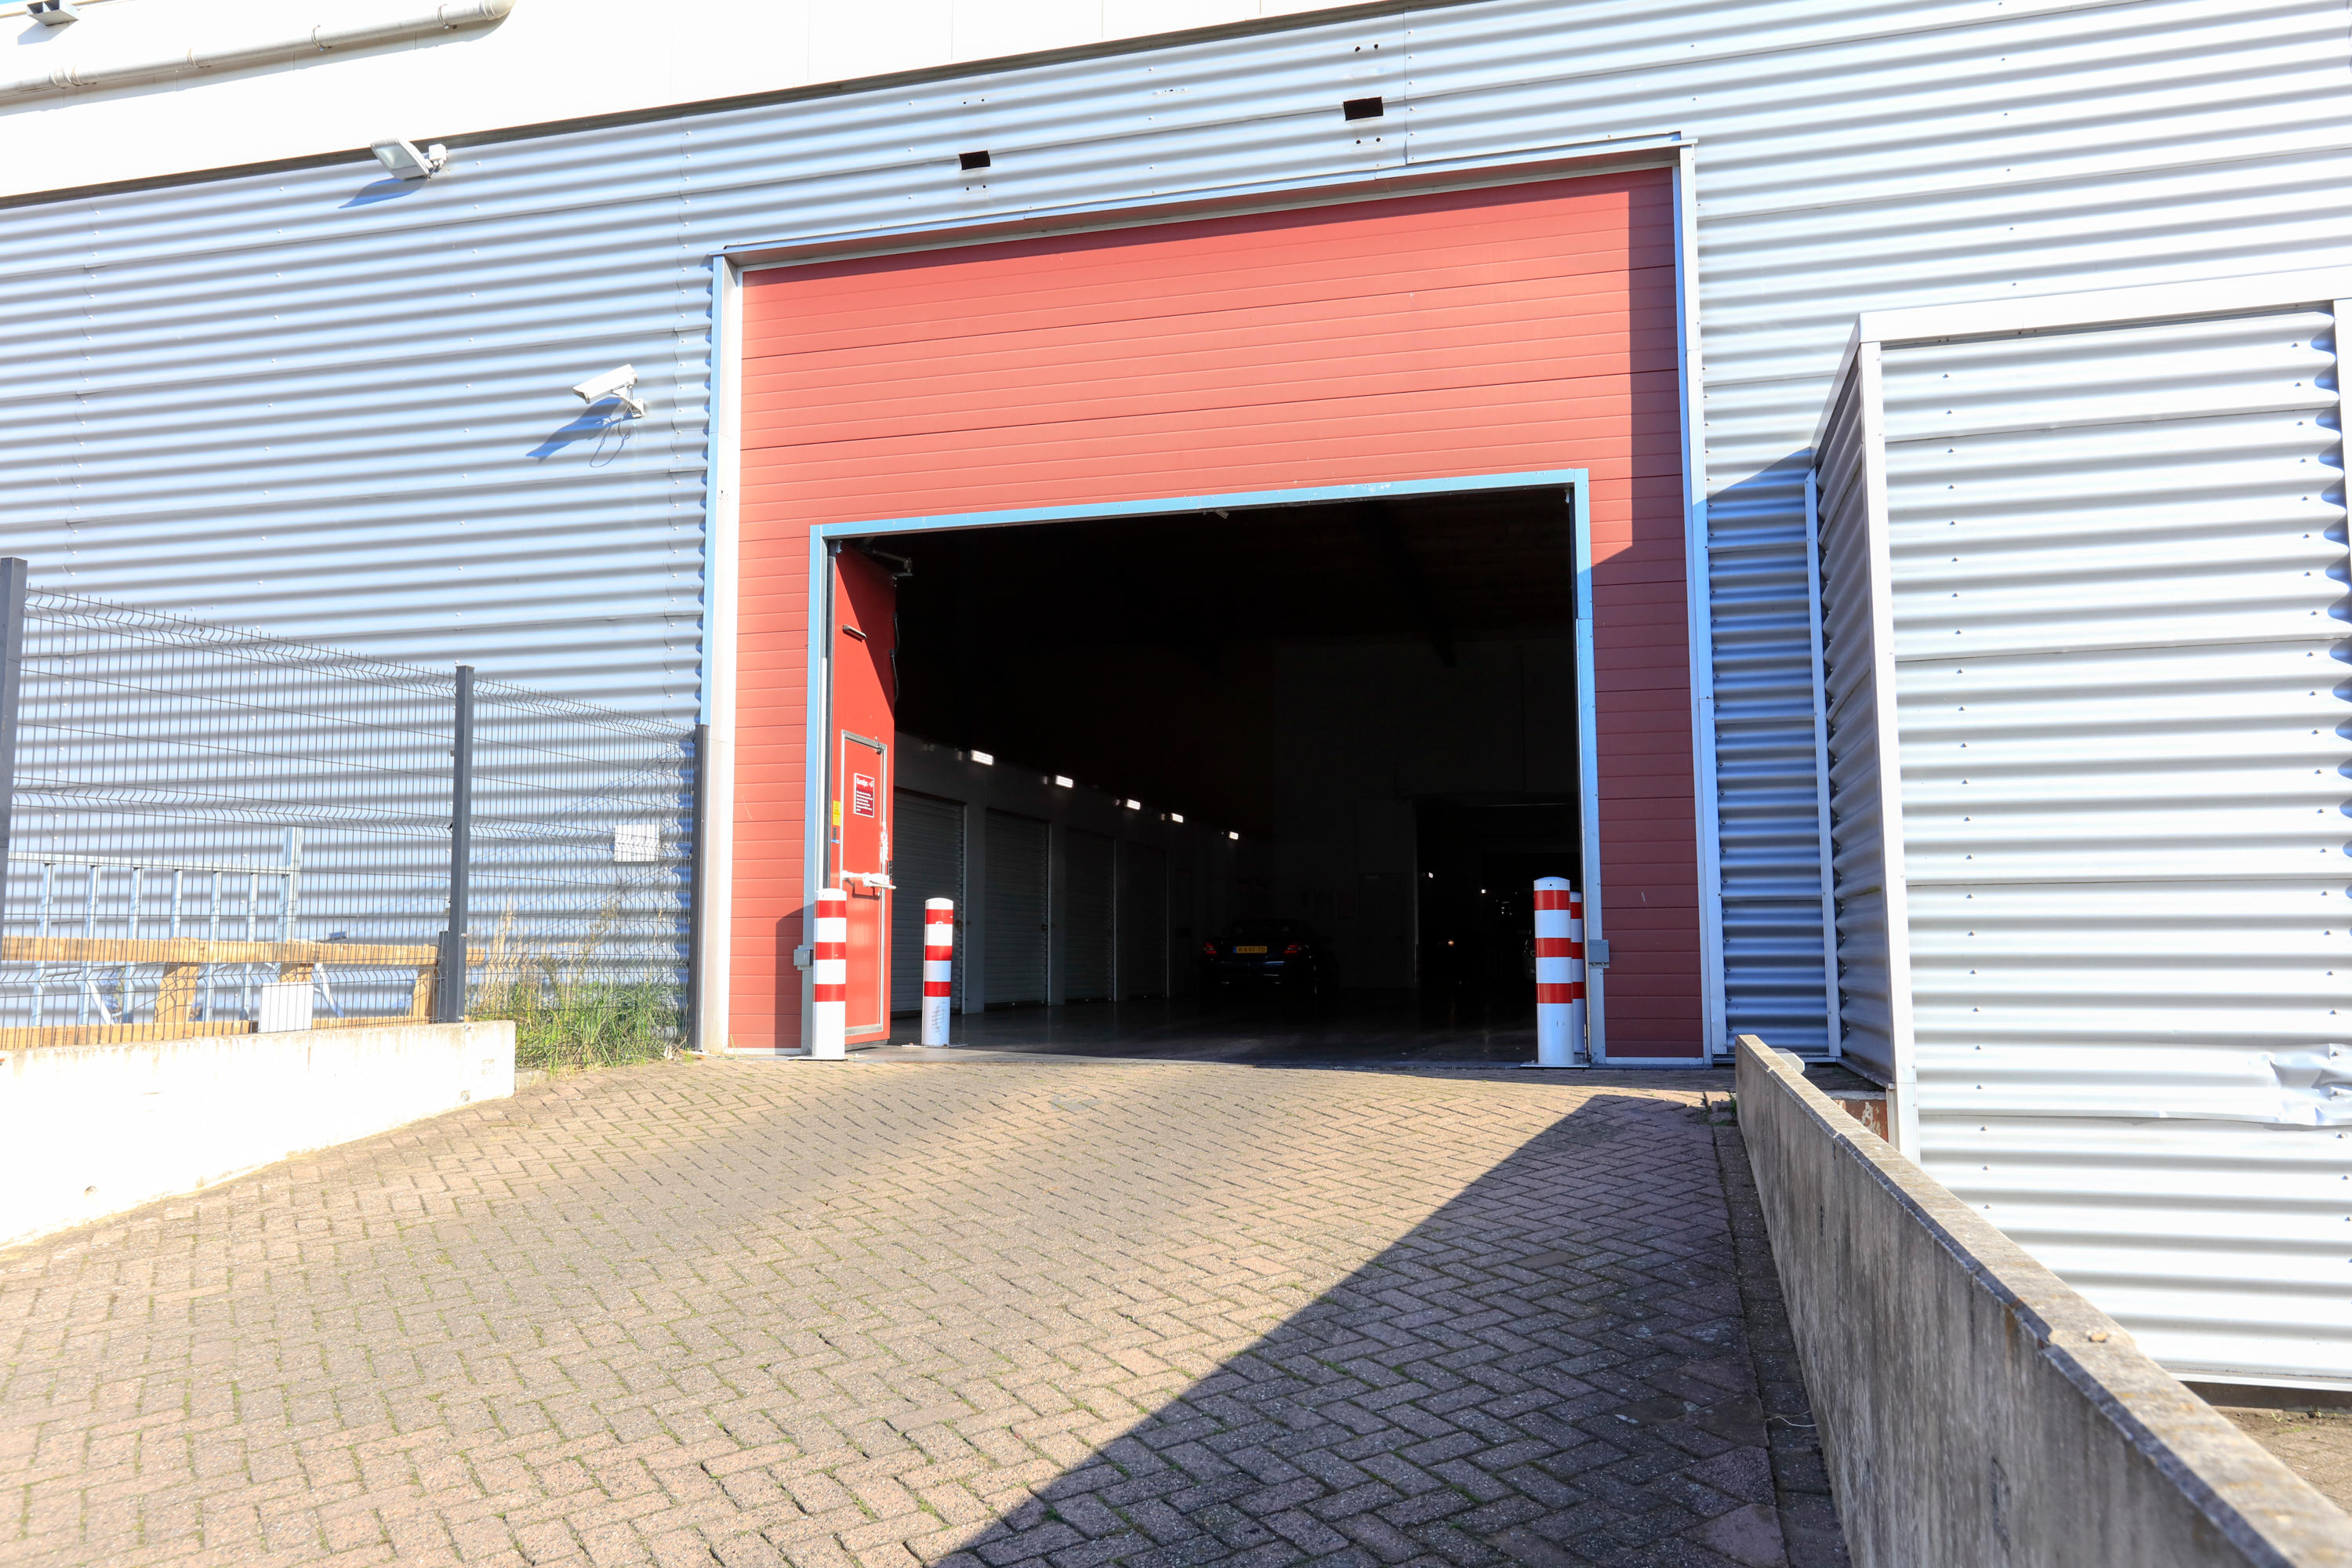 Shurgard Self-Storage Amersfoort